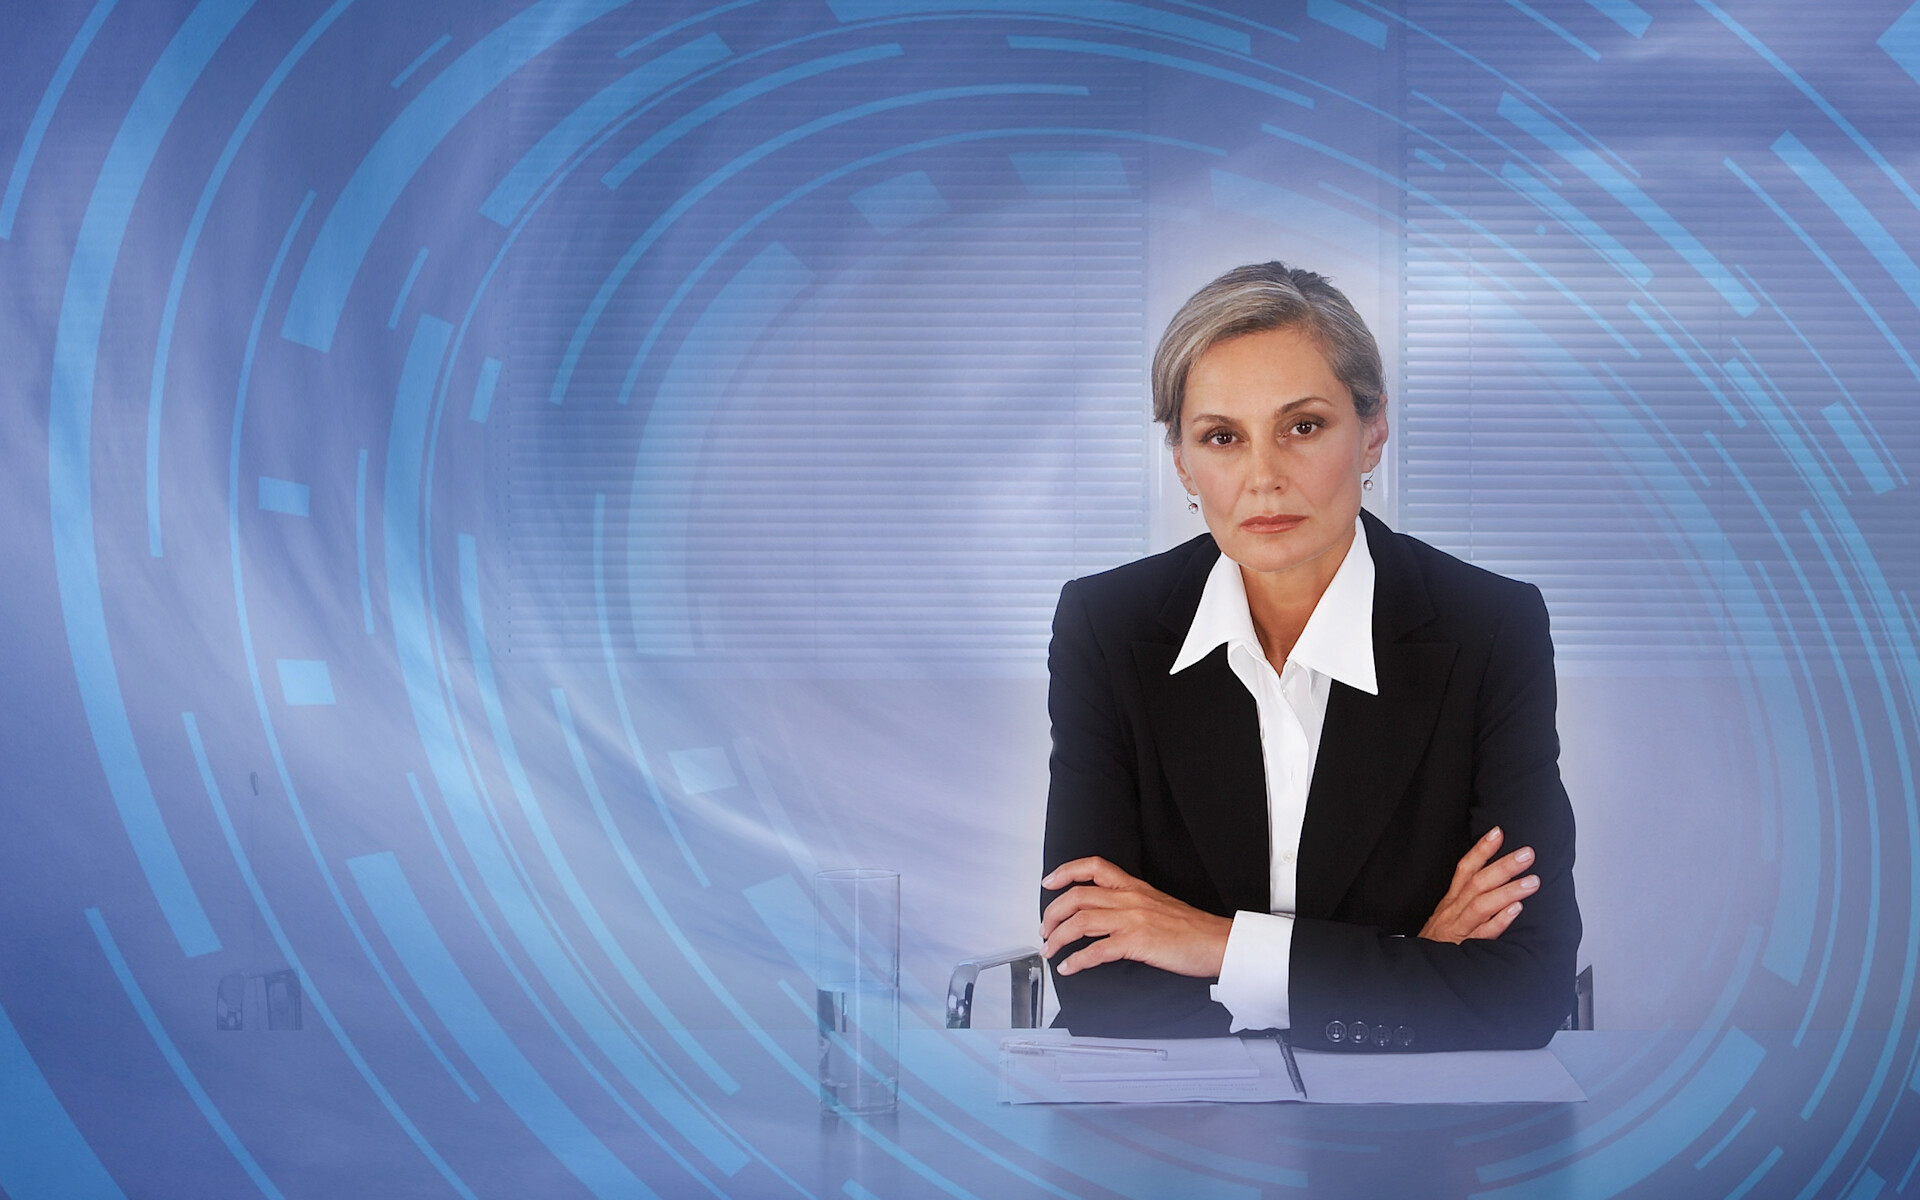 6 More Leadership Guidelines for Turbulent Times